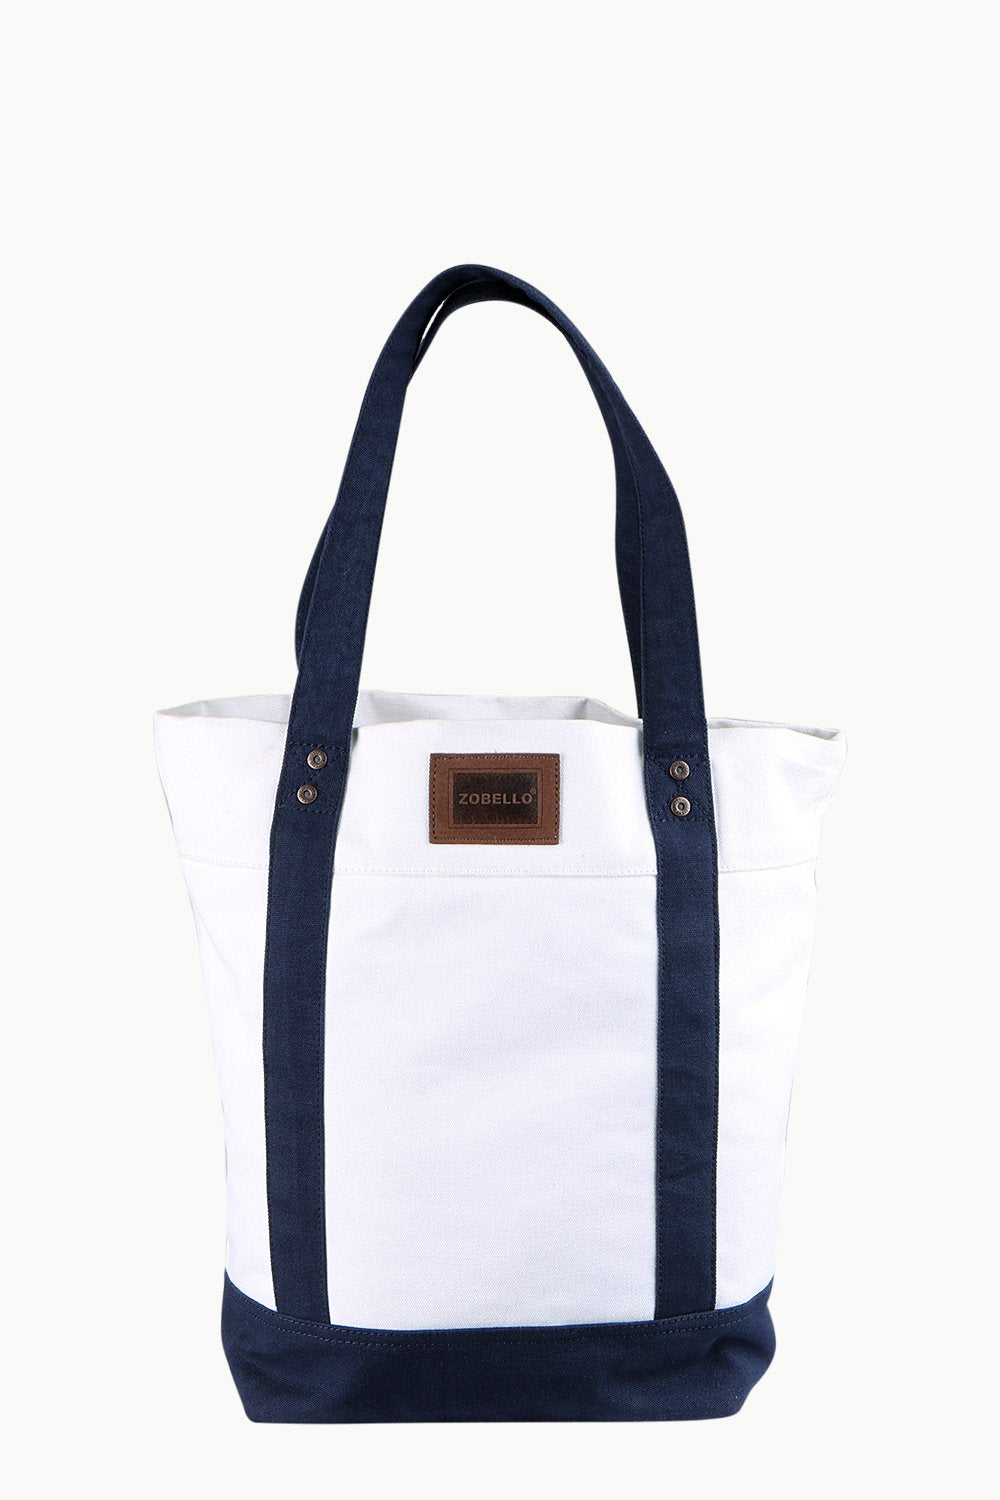 Buy Online Throw In White Canvas Tote Bag Online in India at Zobello c7402bf9f8a7f